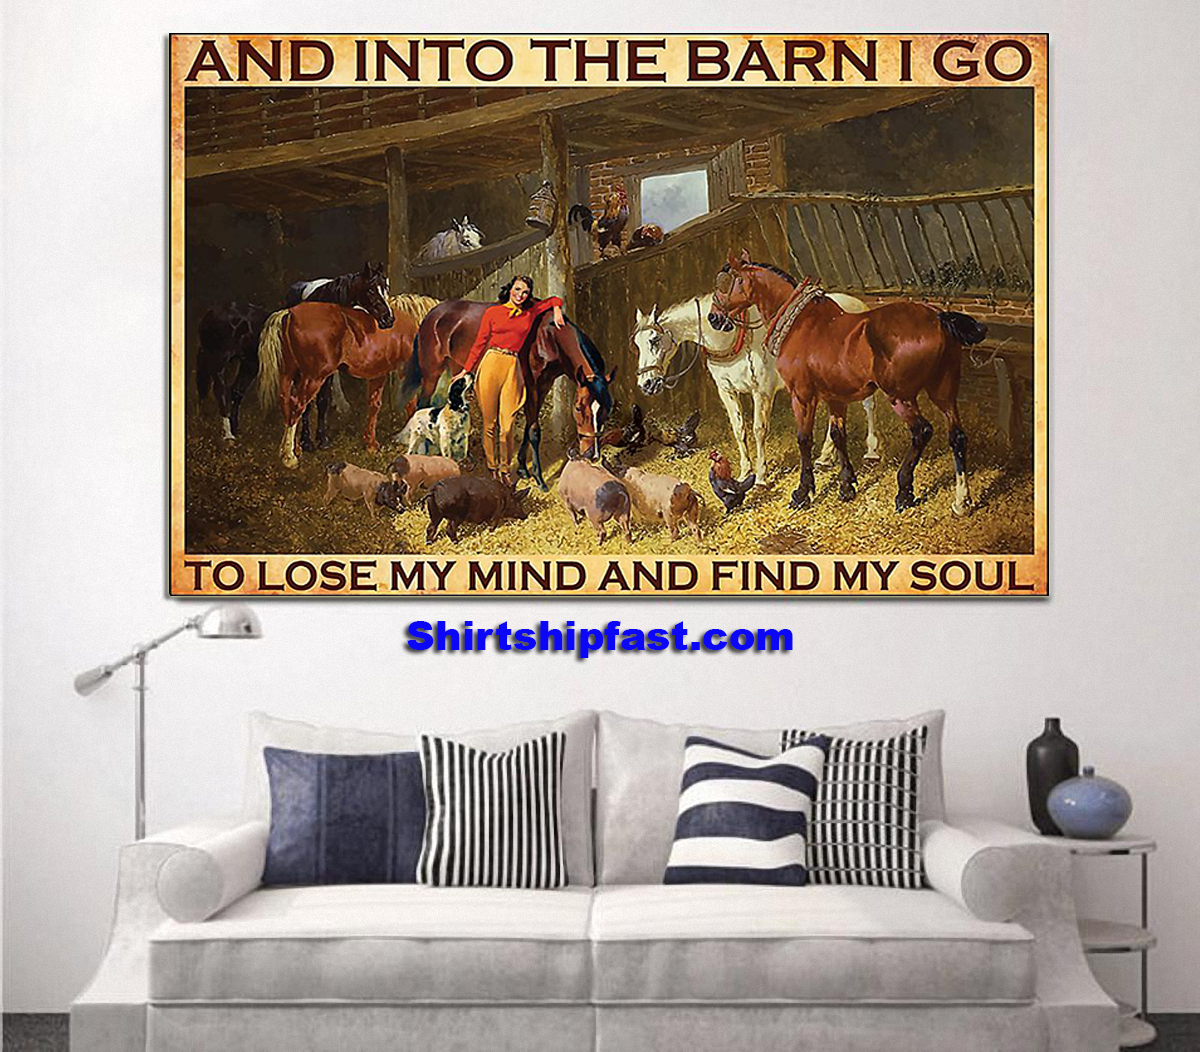 And into the barn Cowgirl poster - Picture 1